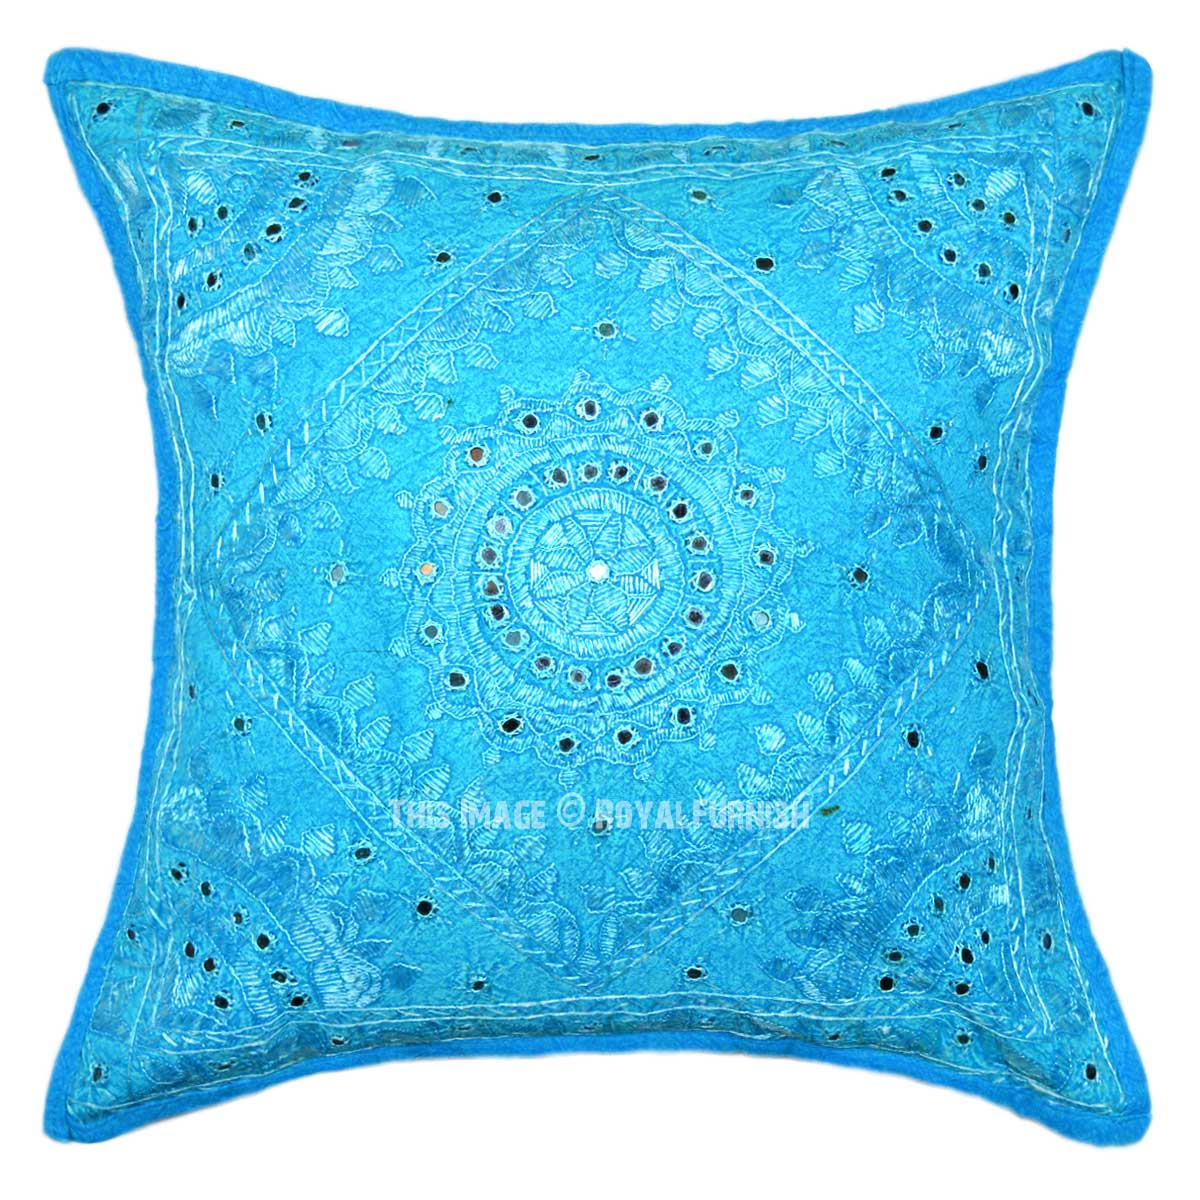 Decorative Turquoise Throw Pillows : 18X18 Turquoise Decorative Mirror Embroidered Work Cotton Throw Pillow Sham - RoyalFurnish.com